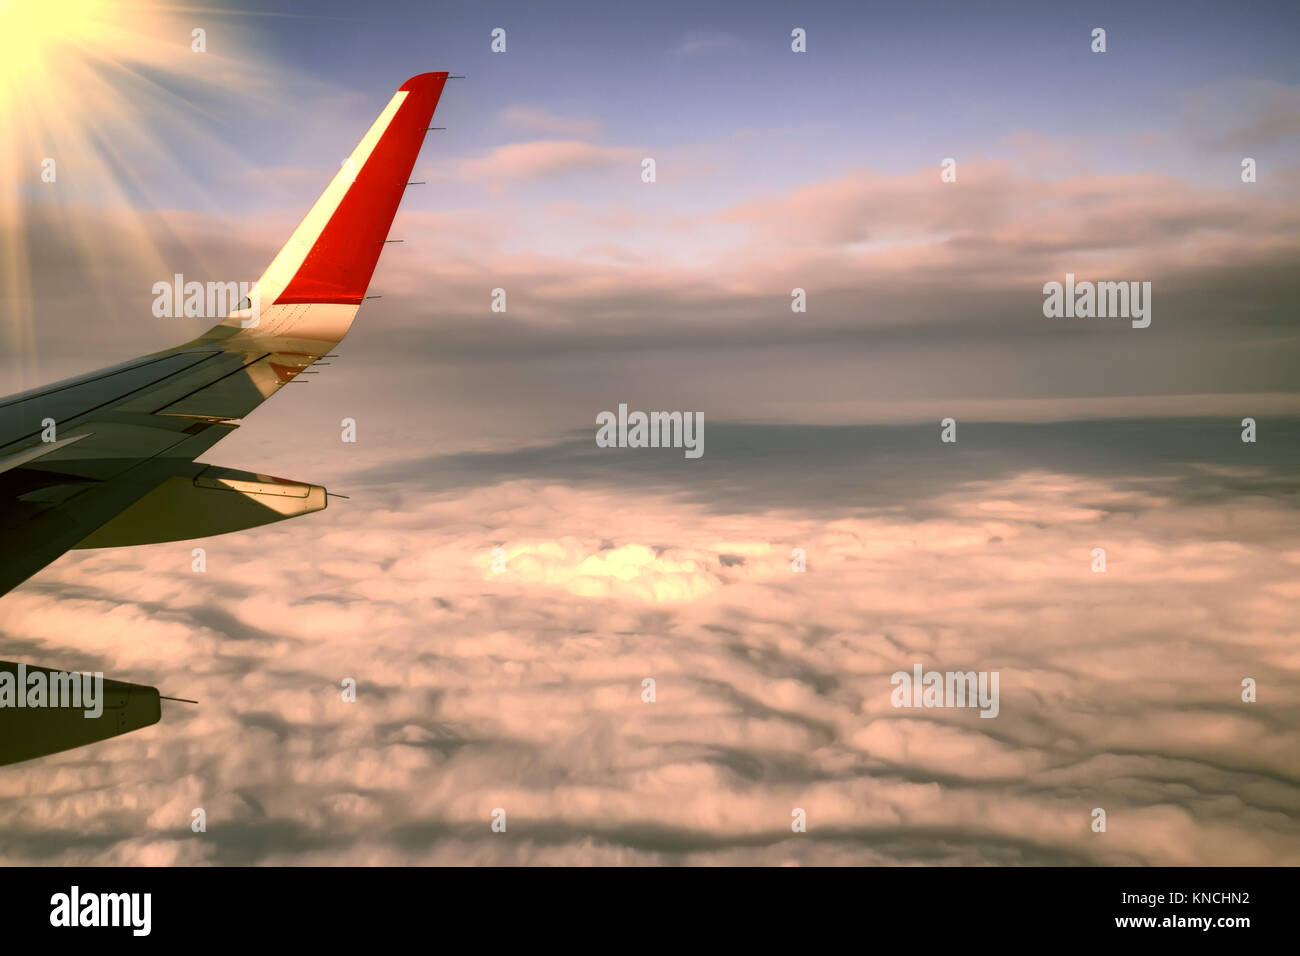 Skyscape viewed from airplane - Stock Image